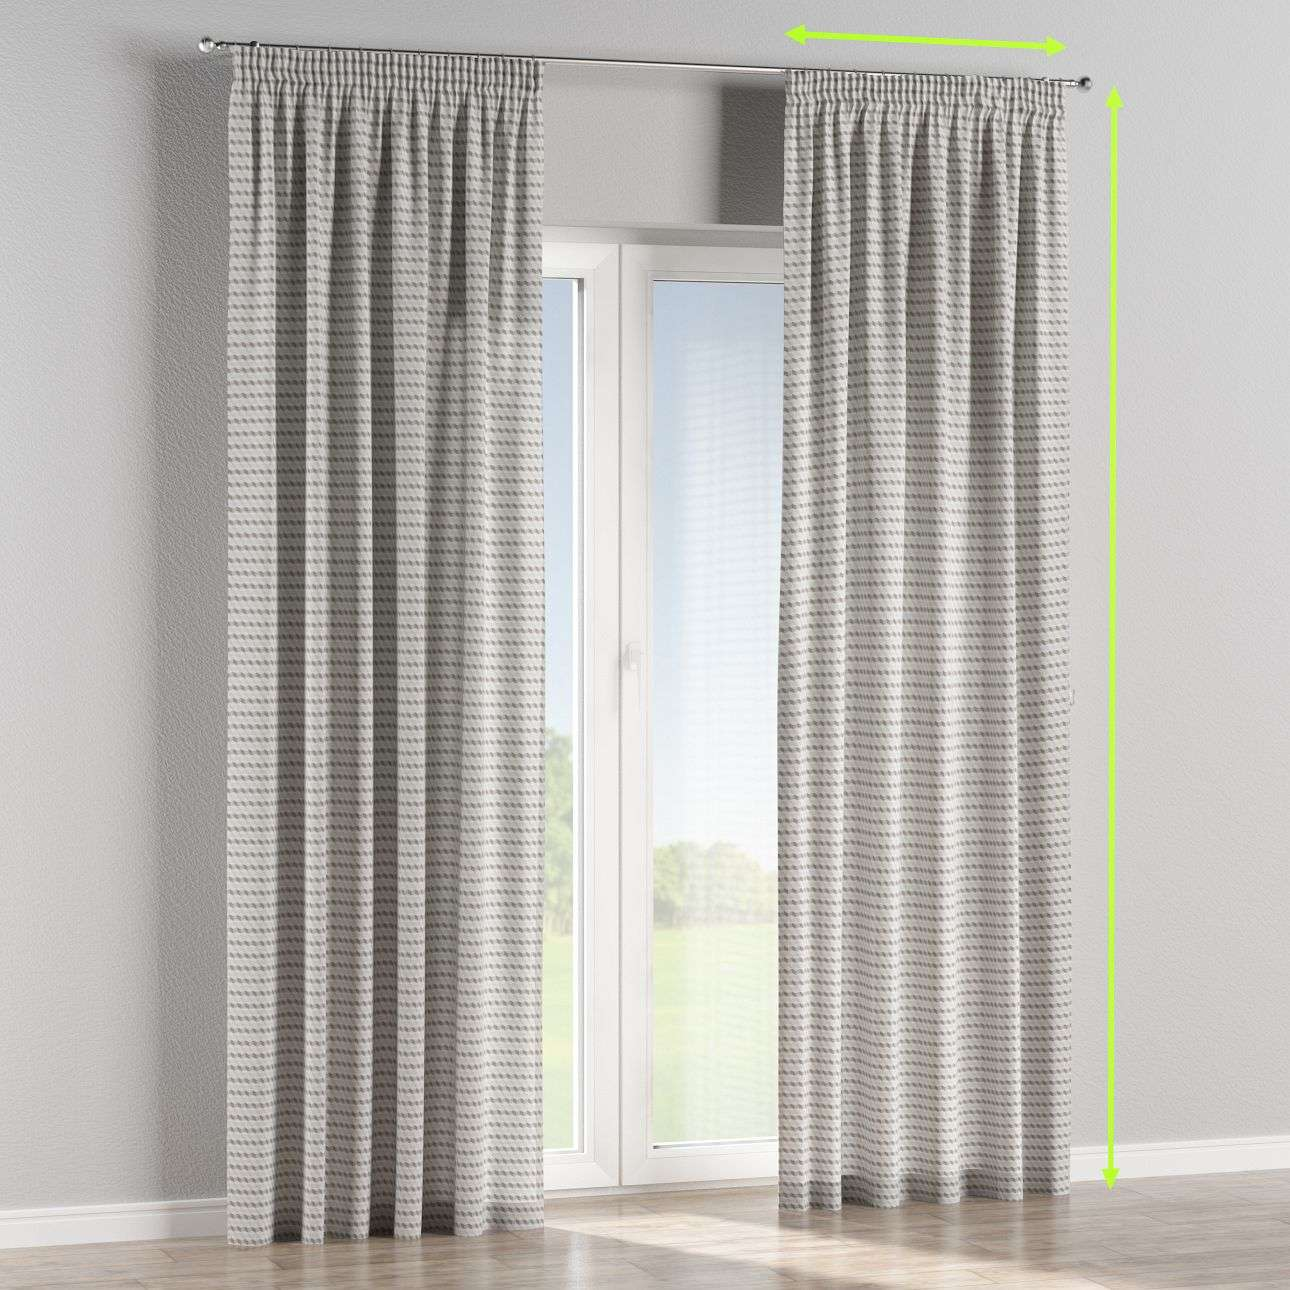 Pencil pleat lined curtains in collection Rustica, fabric: 140-33